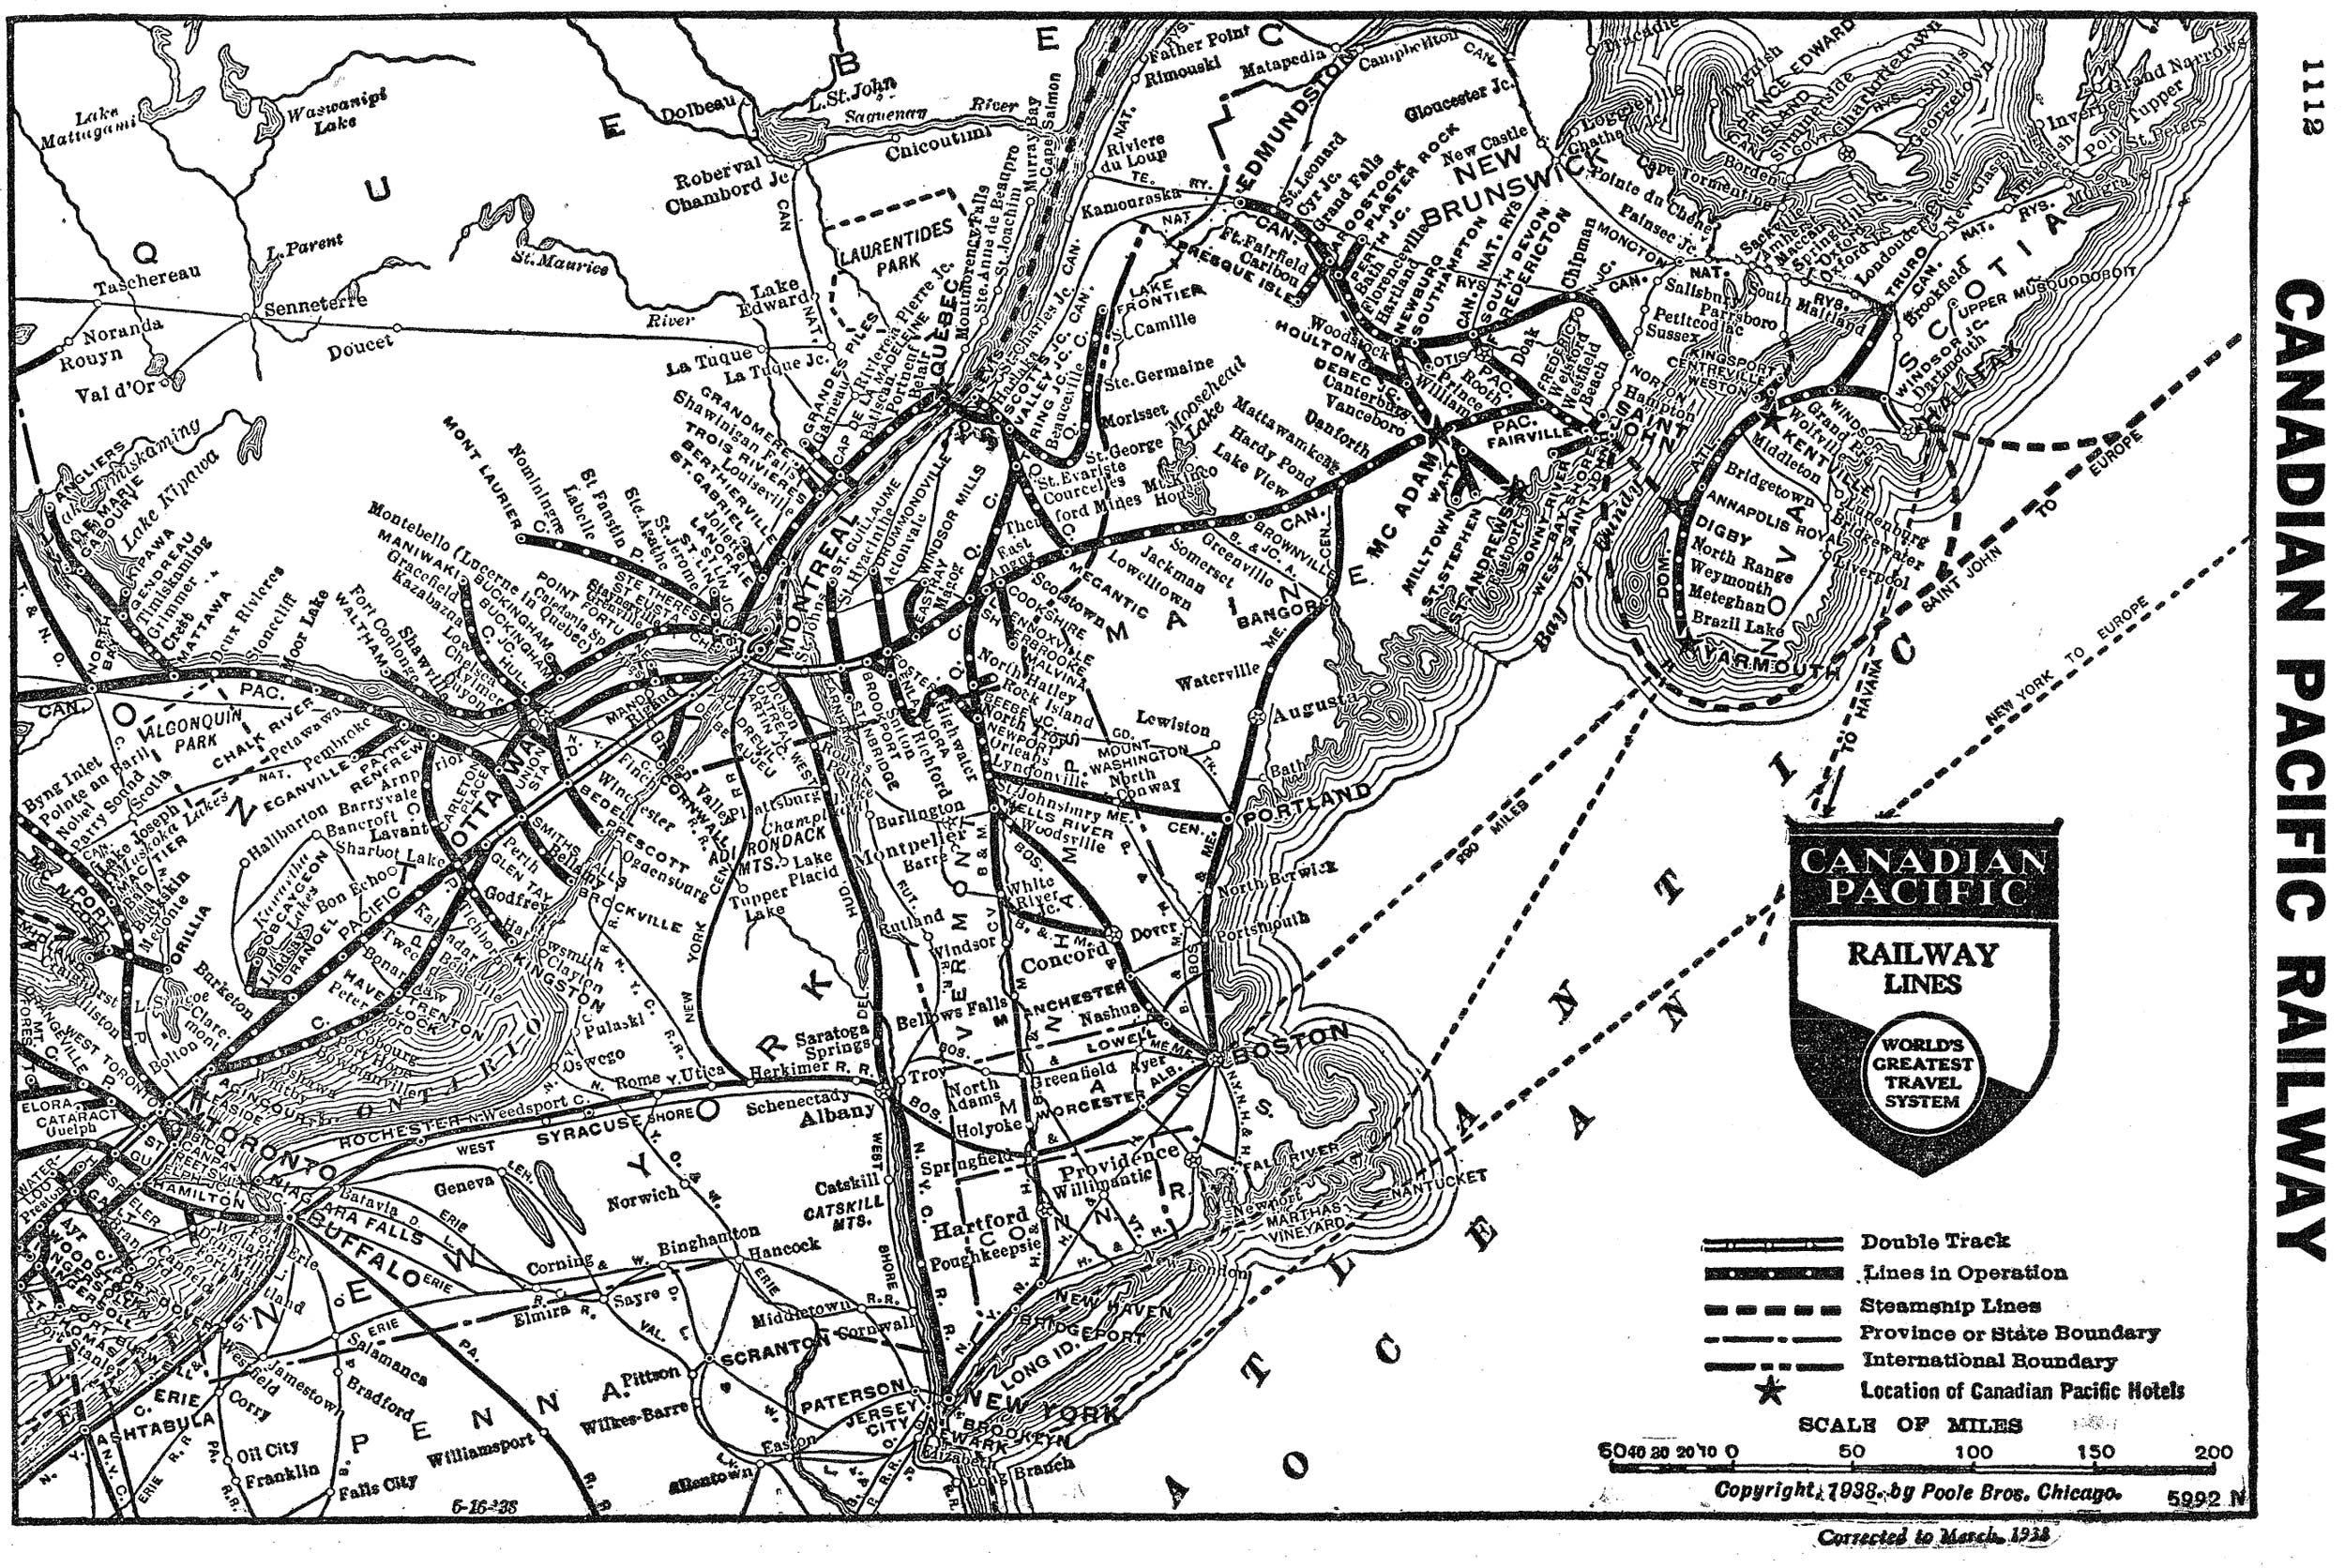 canadian pacific system map Canadian Pacific Railway History Map Photos More canadian pacific system map